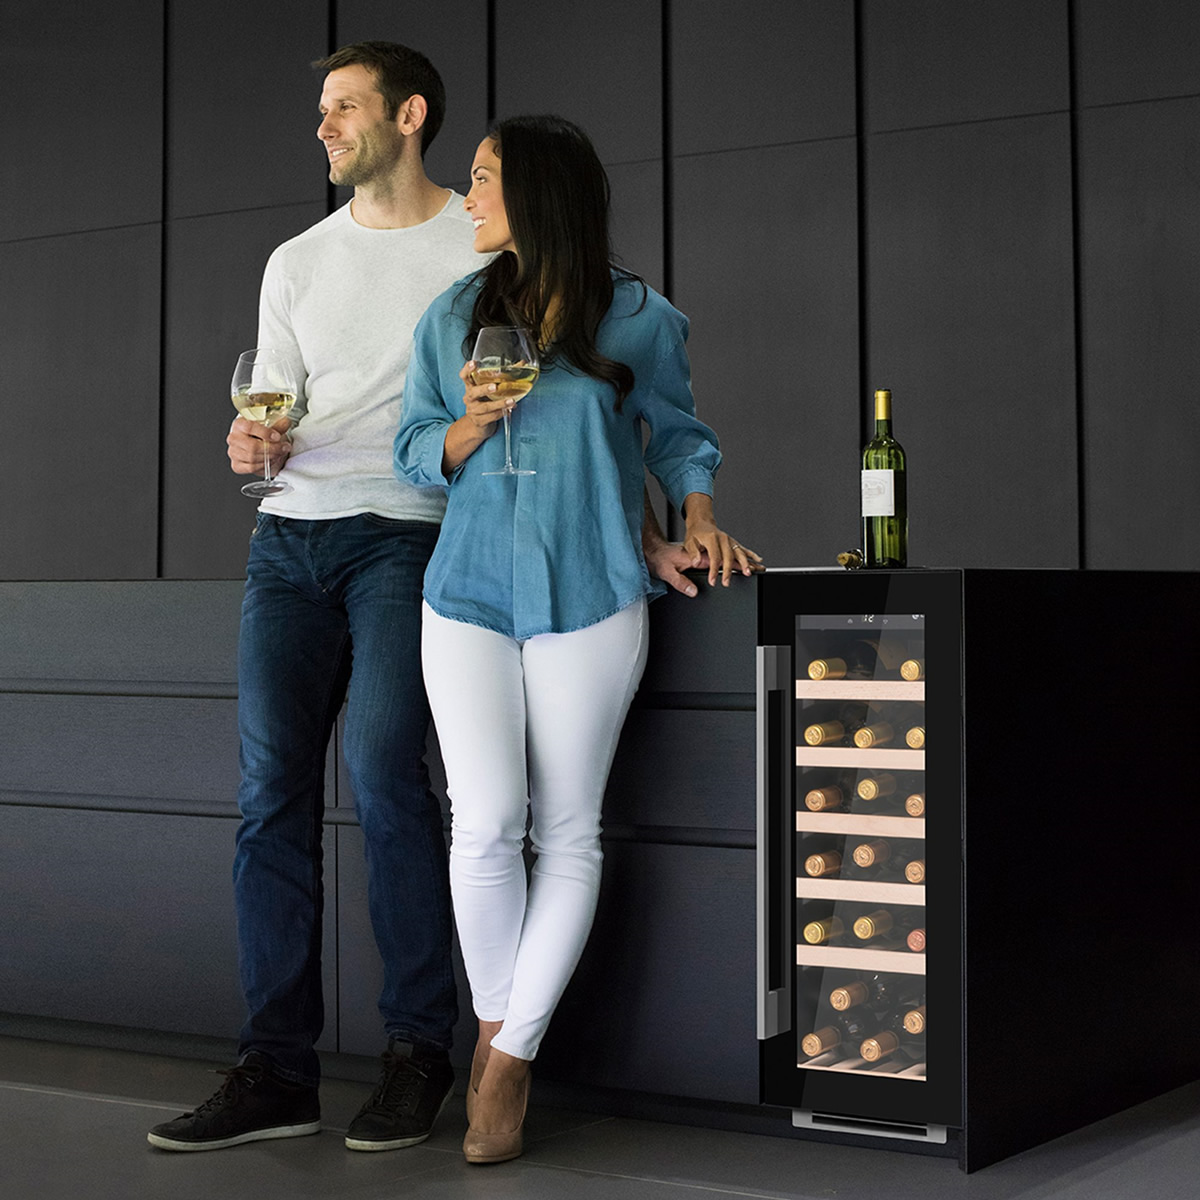 19 Bottle Capacity Under-Counter Wine Cooler Black Glas